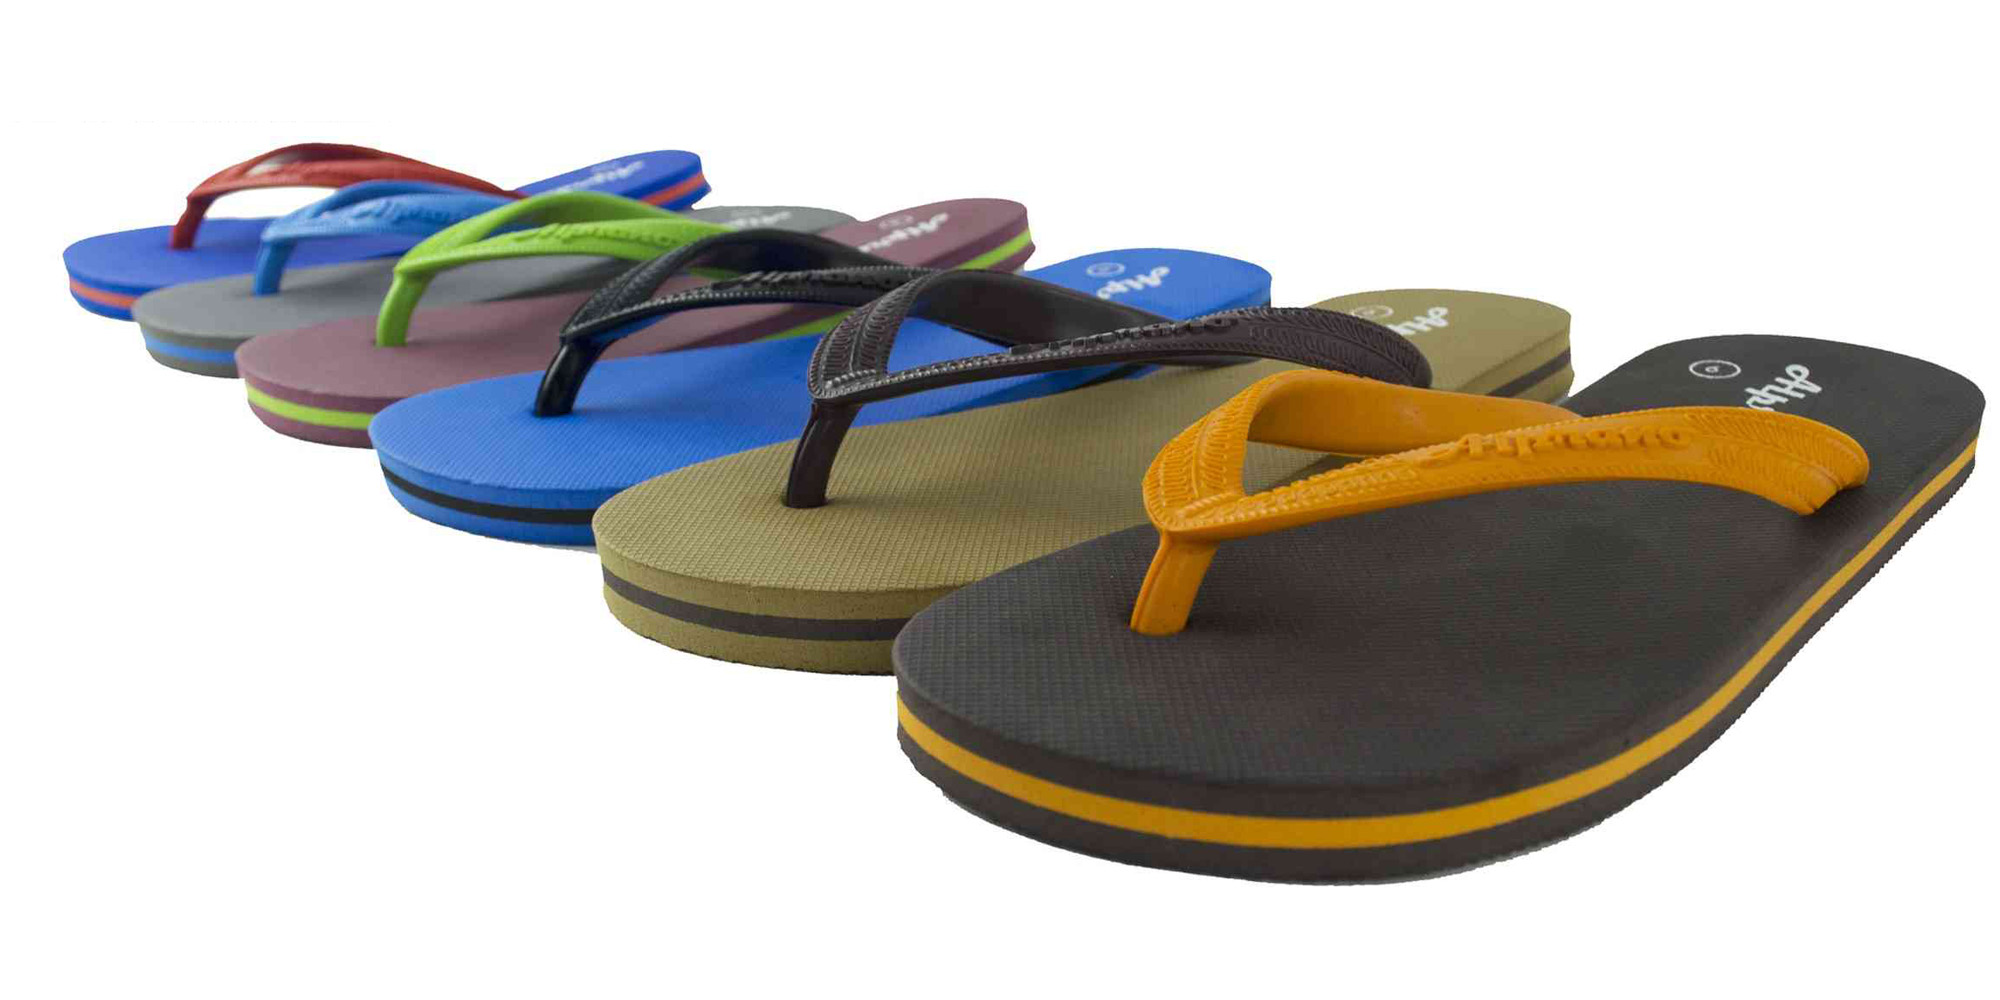 JN-APL06 (UK8) Alprano Slipper